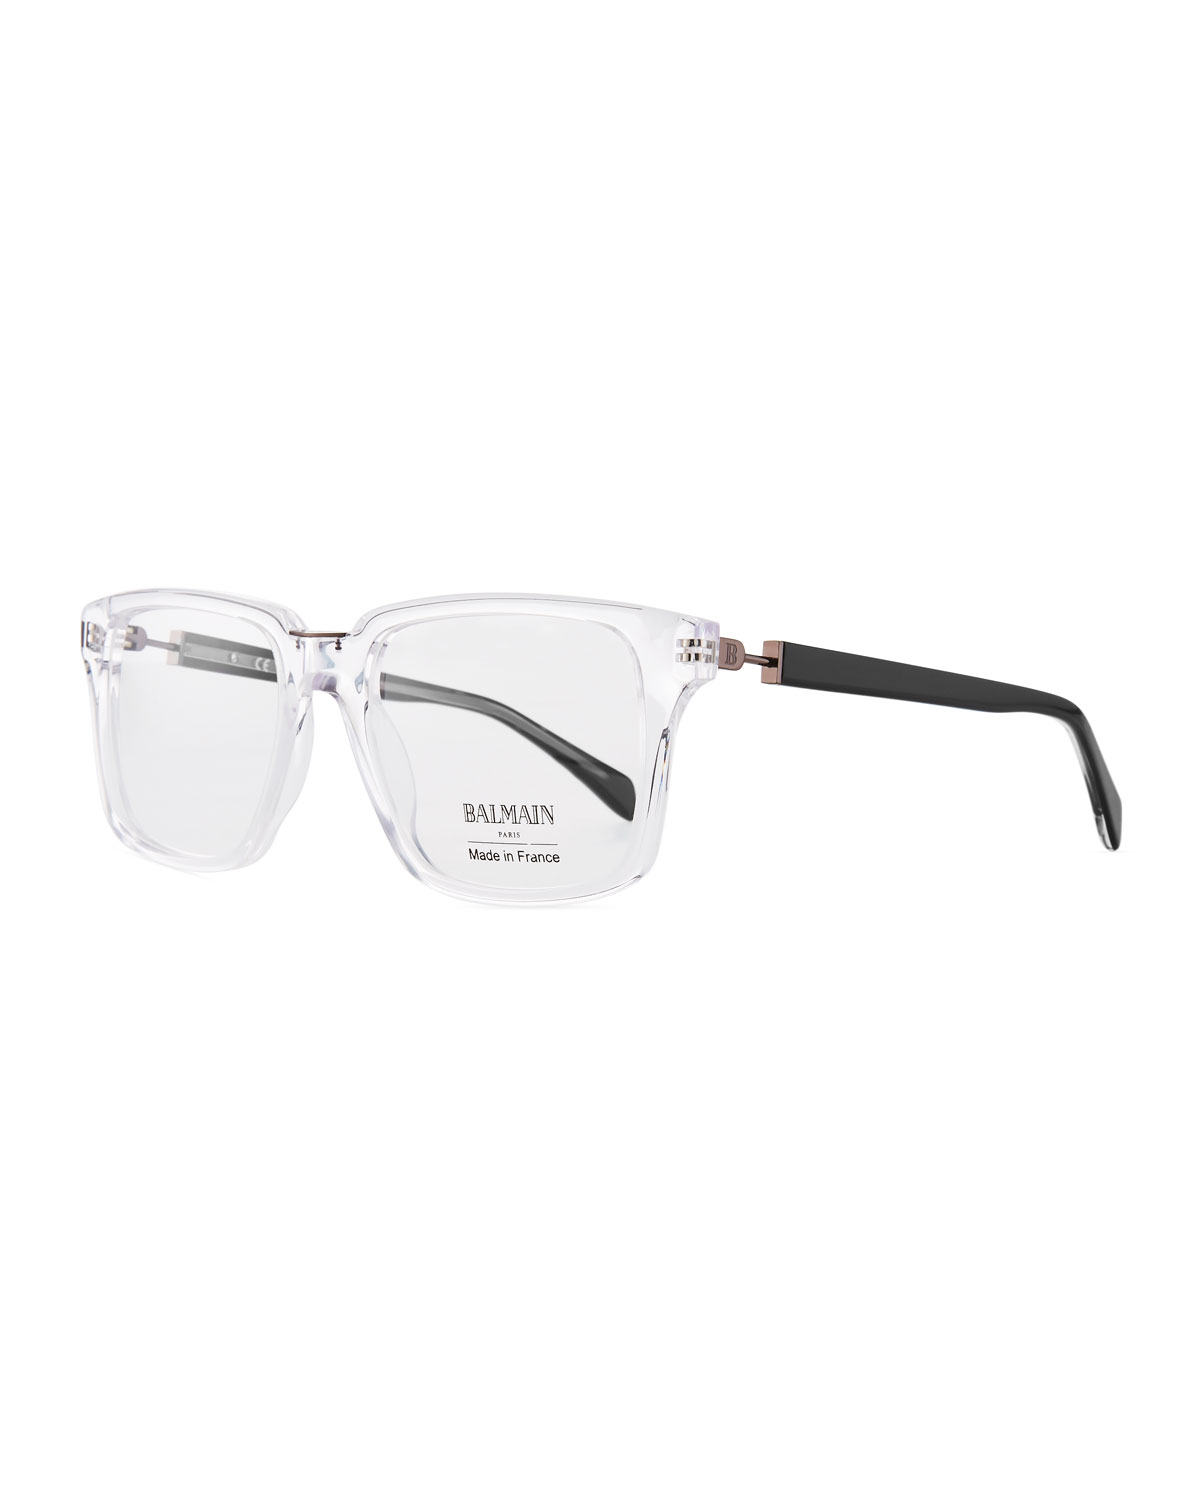 BALMAIN Clear Acetate Square Optical Glasses, White Pattern | ModeSens